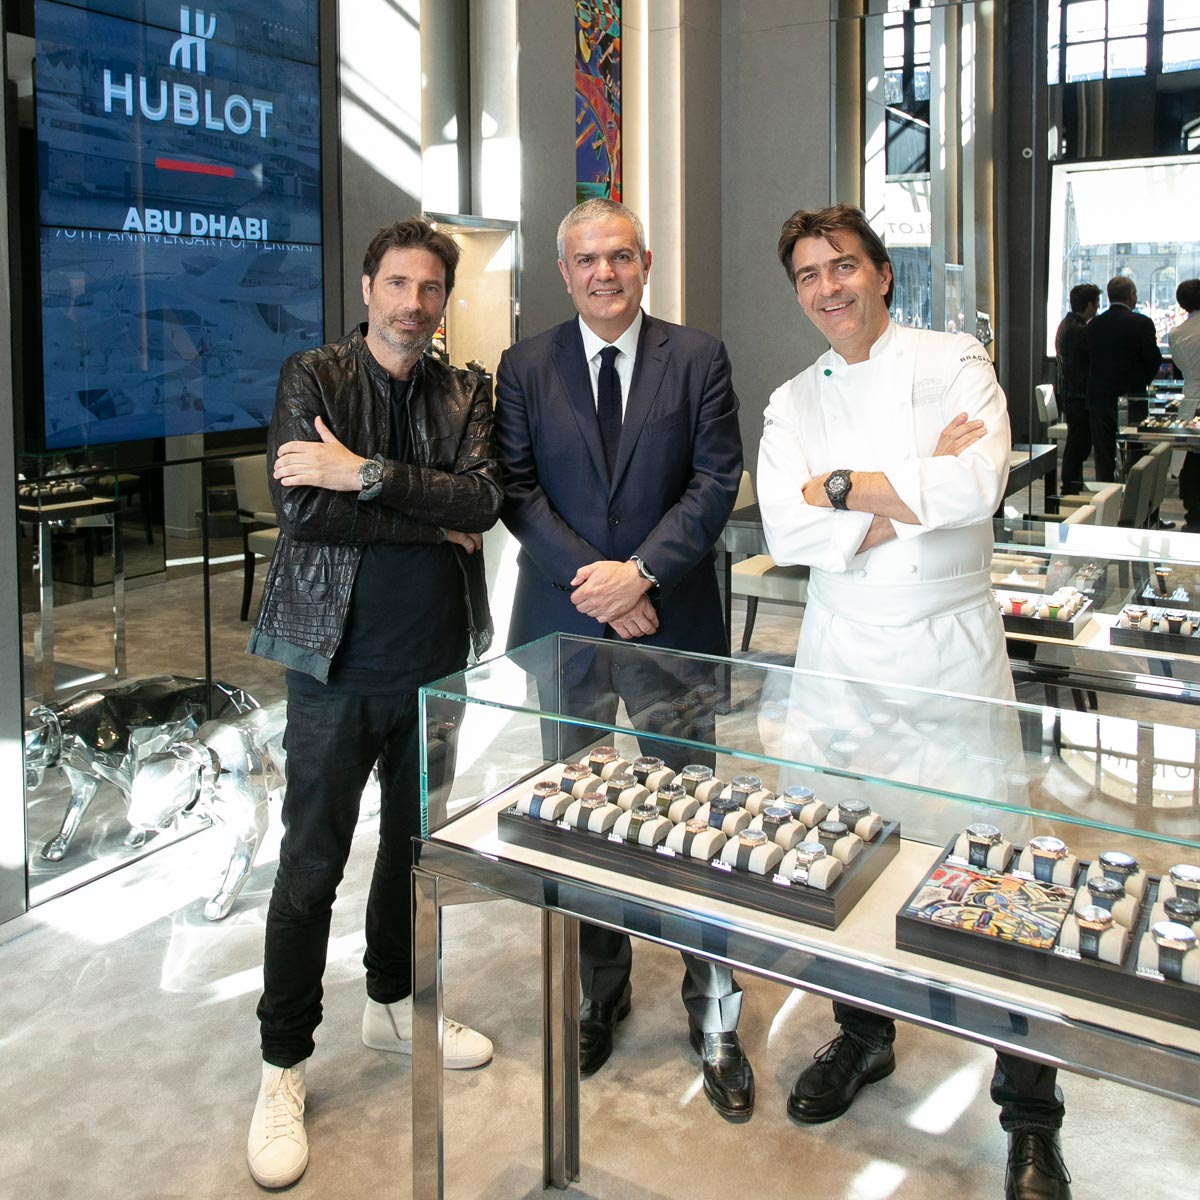 The Watch Quote: Photo - Hublot left its mark on the mythical Place Vendôme